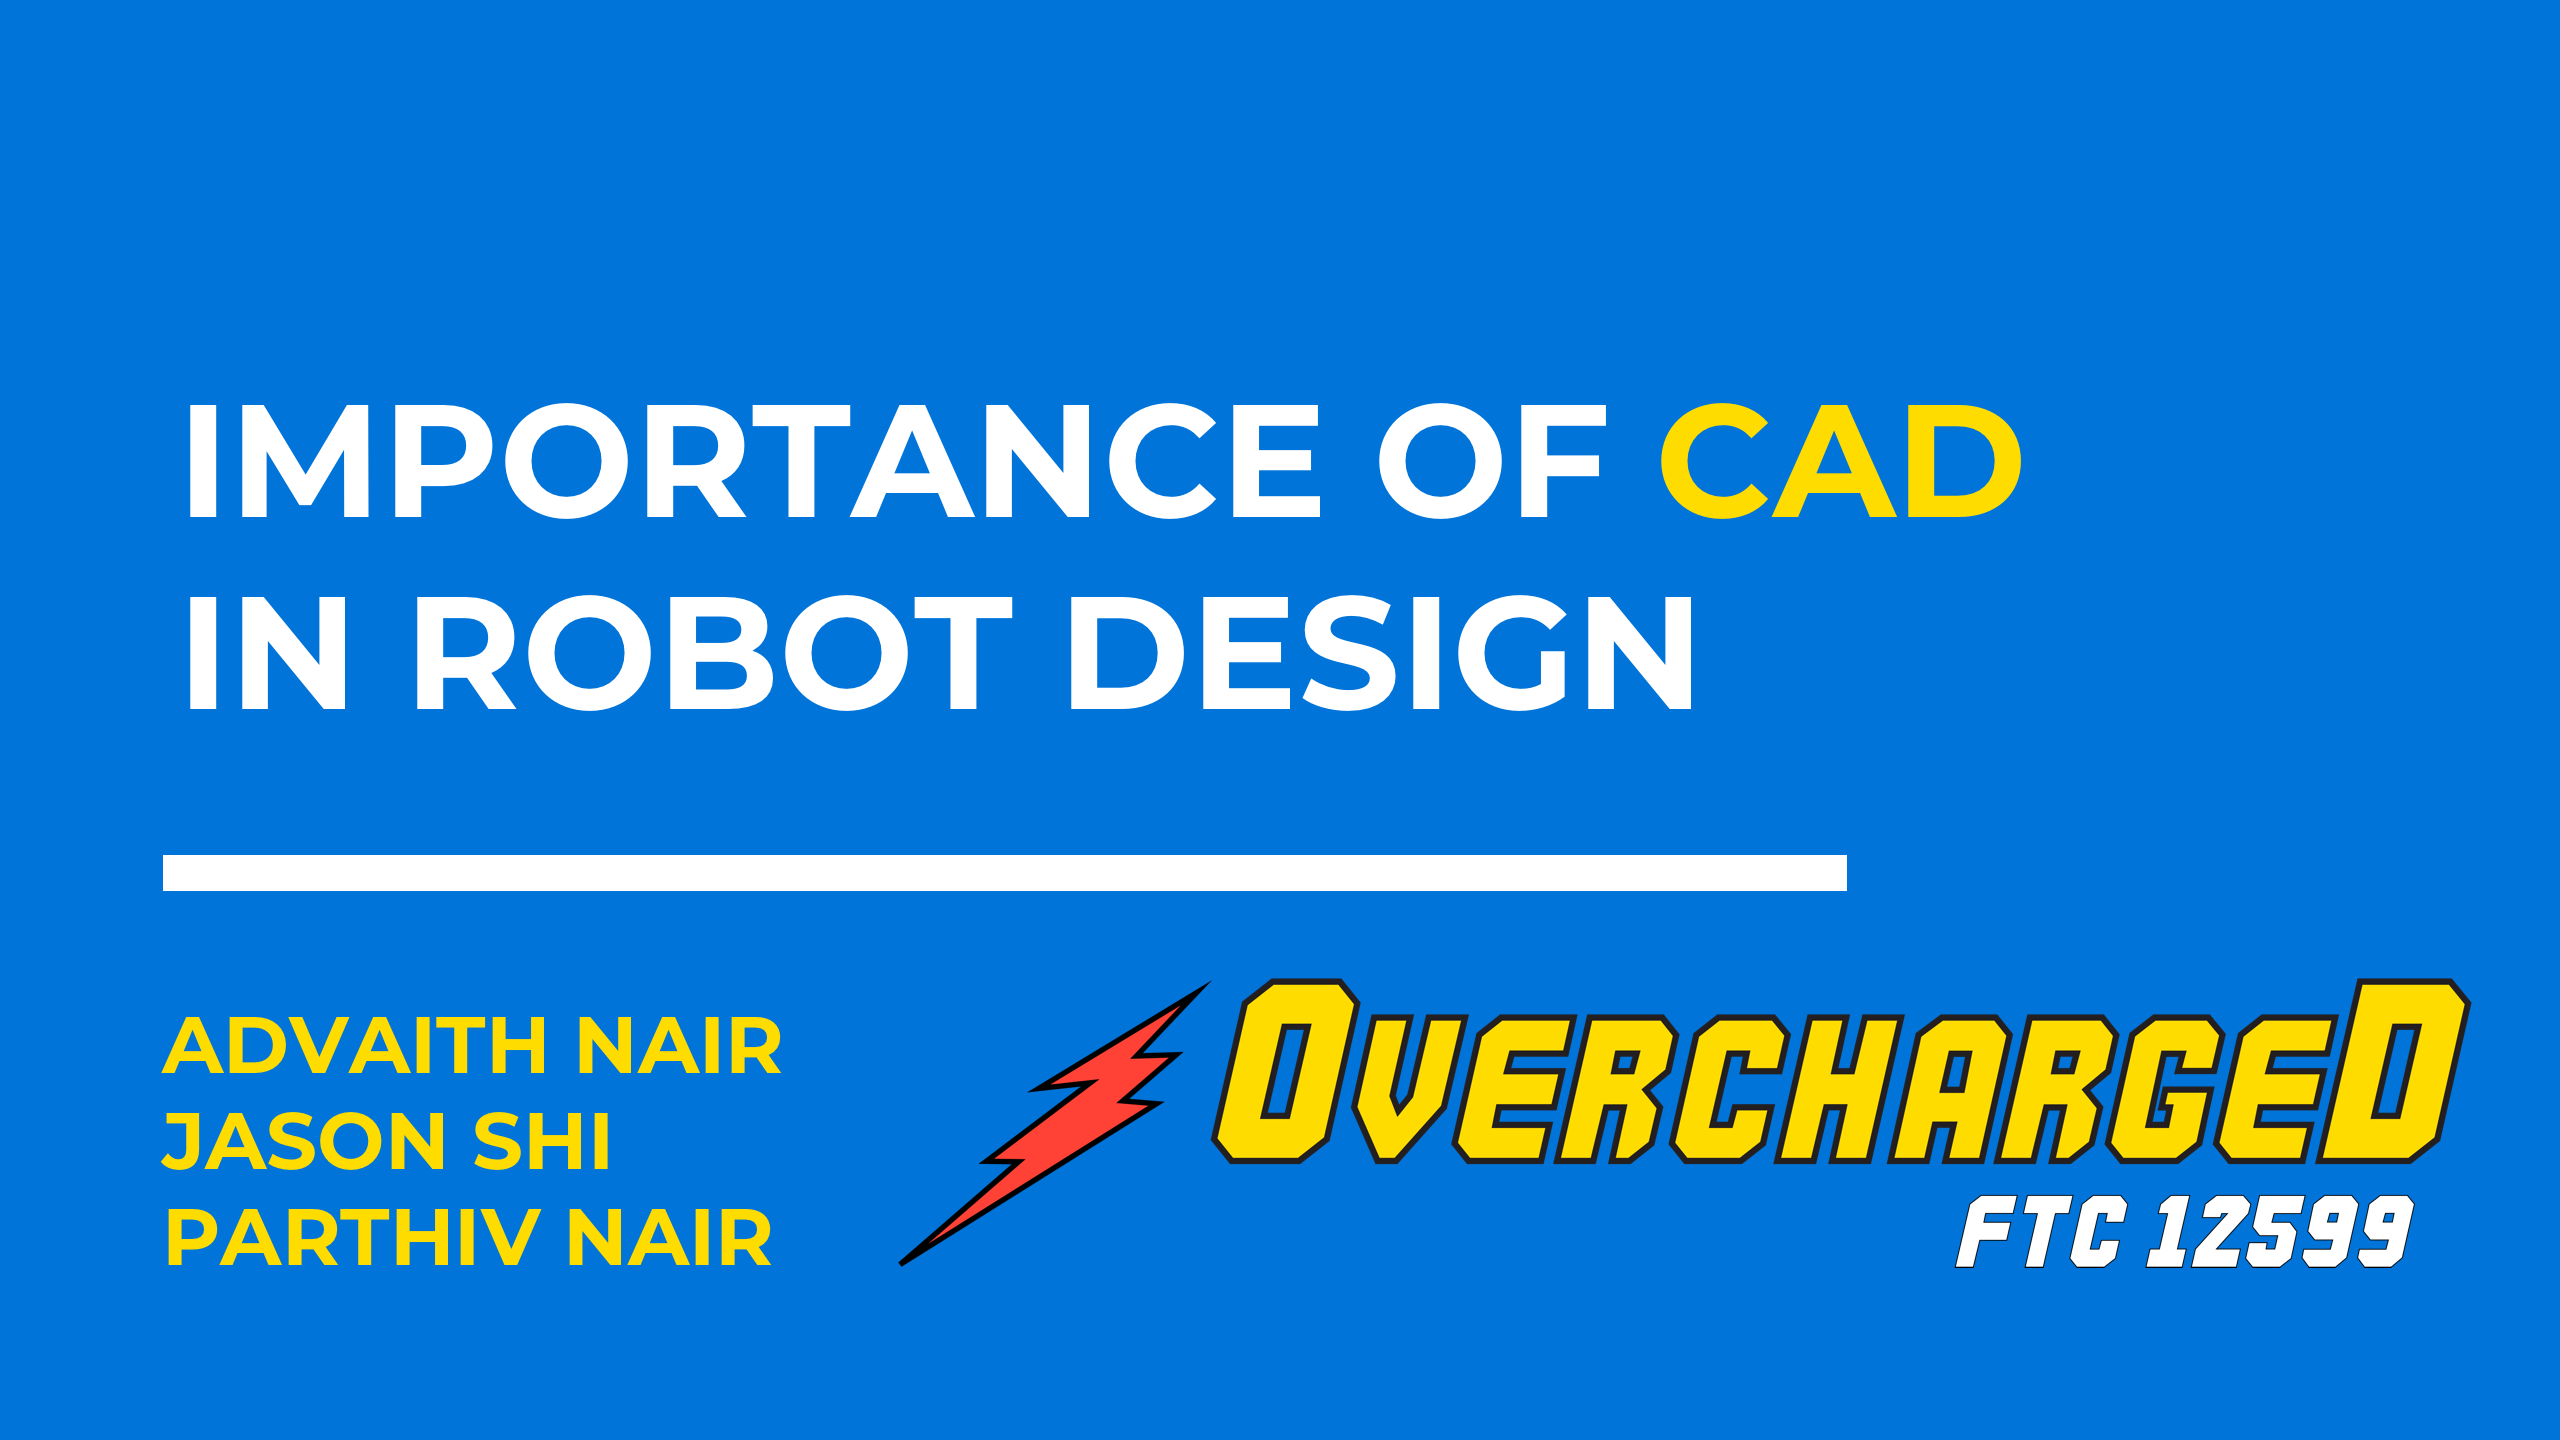 Importance of CAD in Robot Design